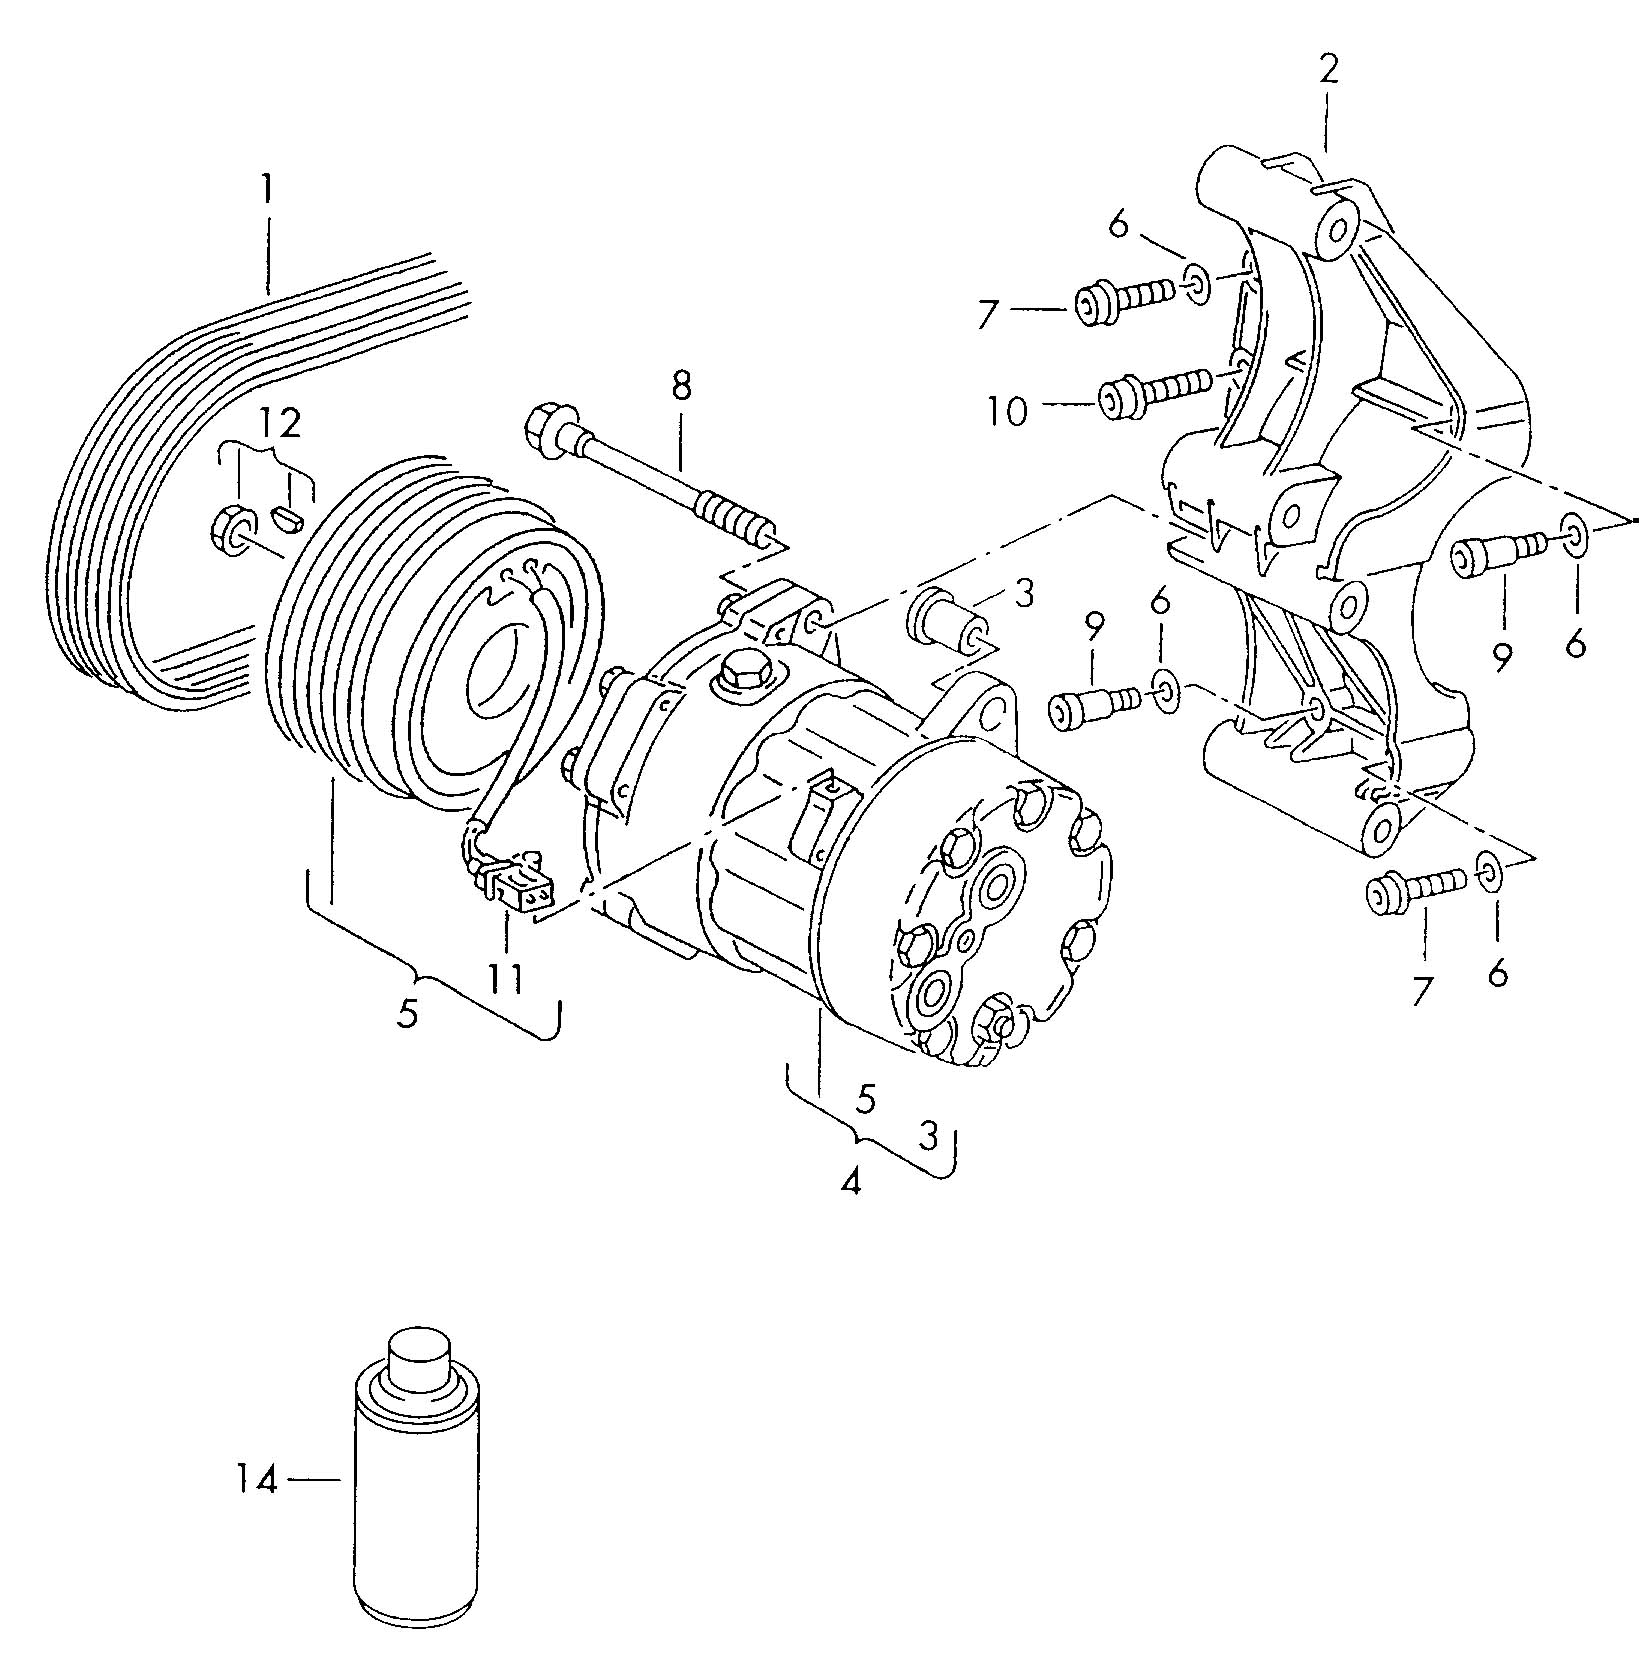 Vw Jetta Ac Parts Diagram Auto Wiring. Diagram. Auto